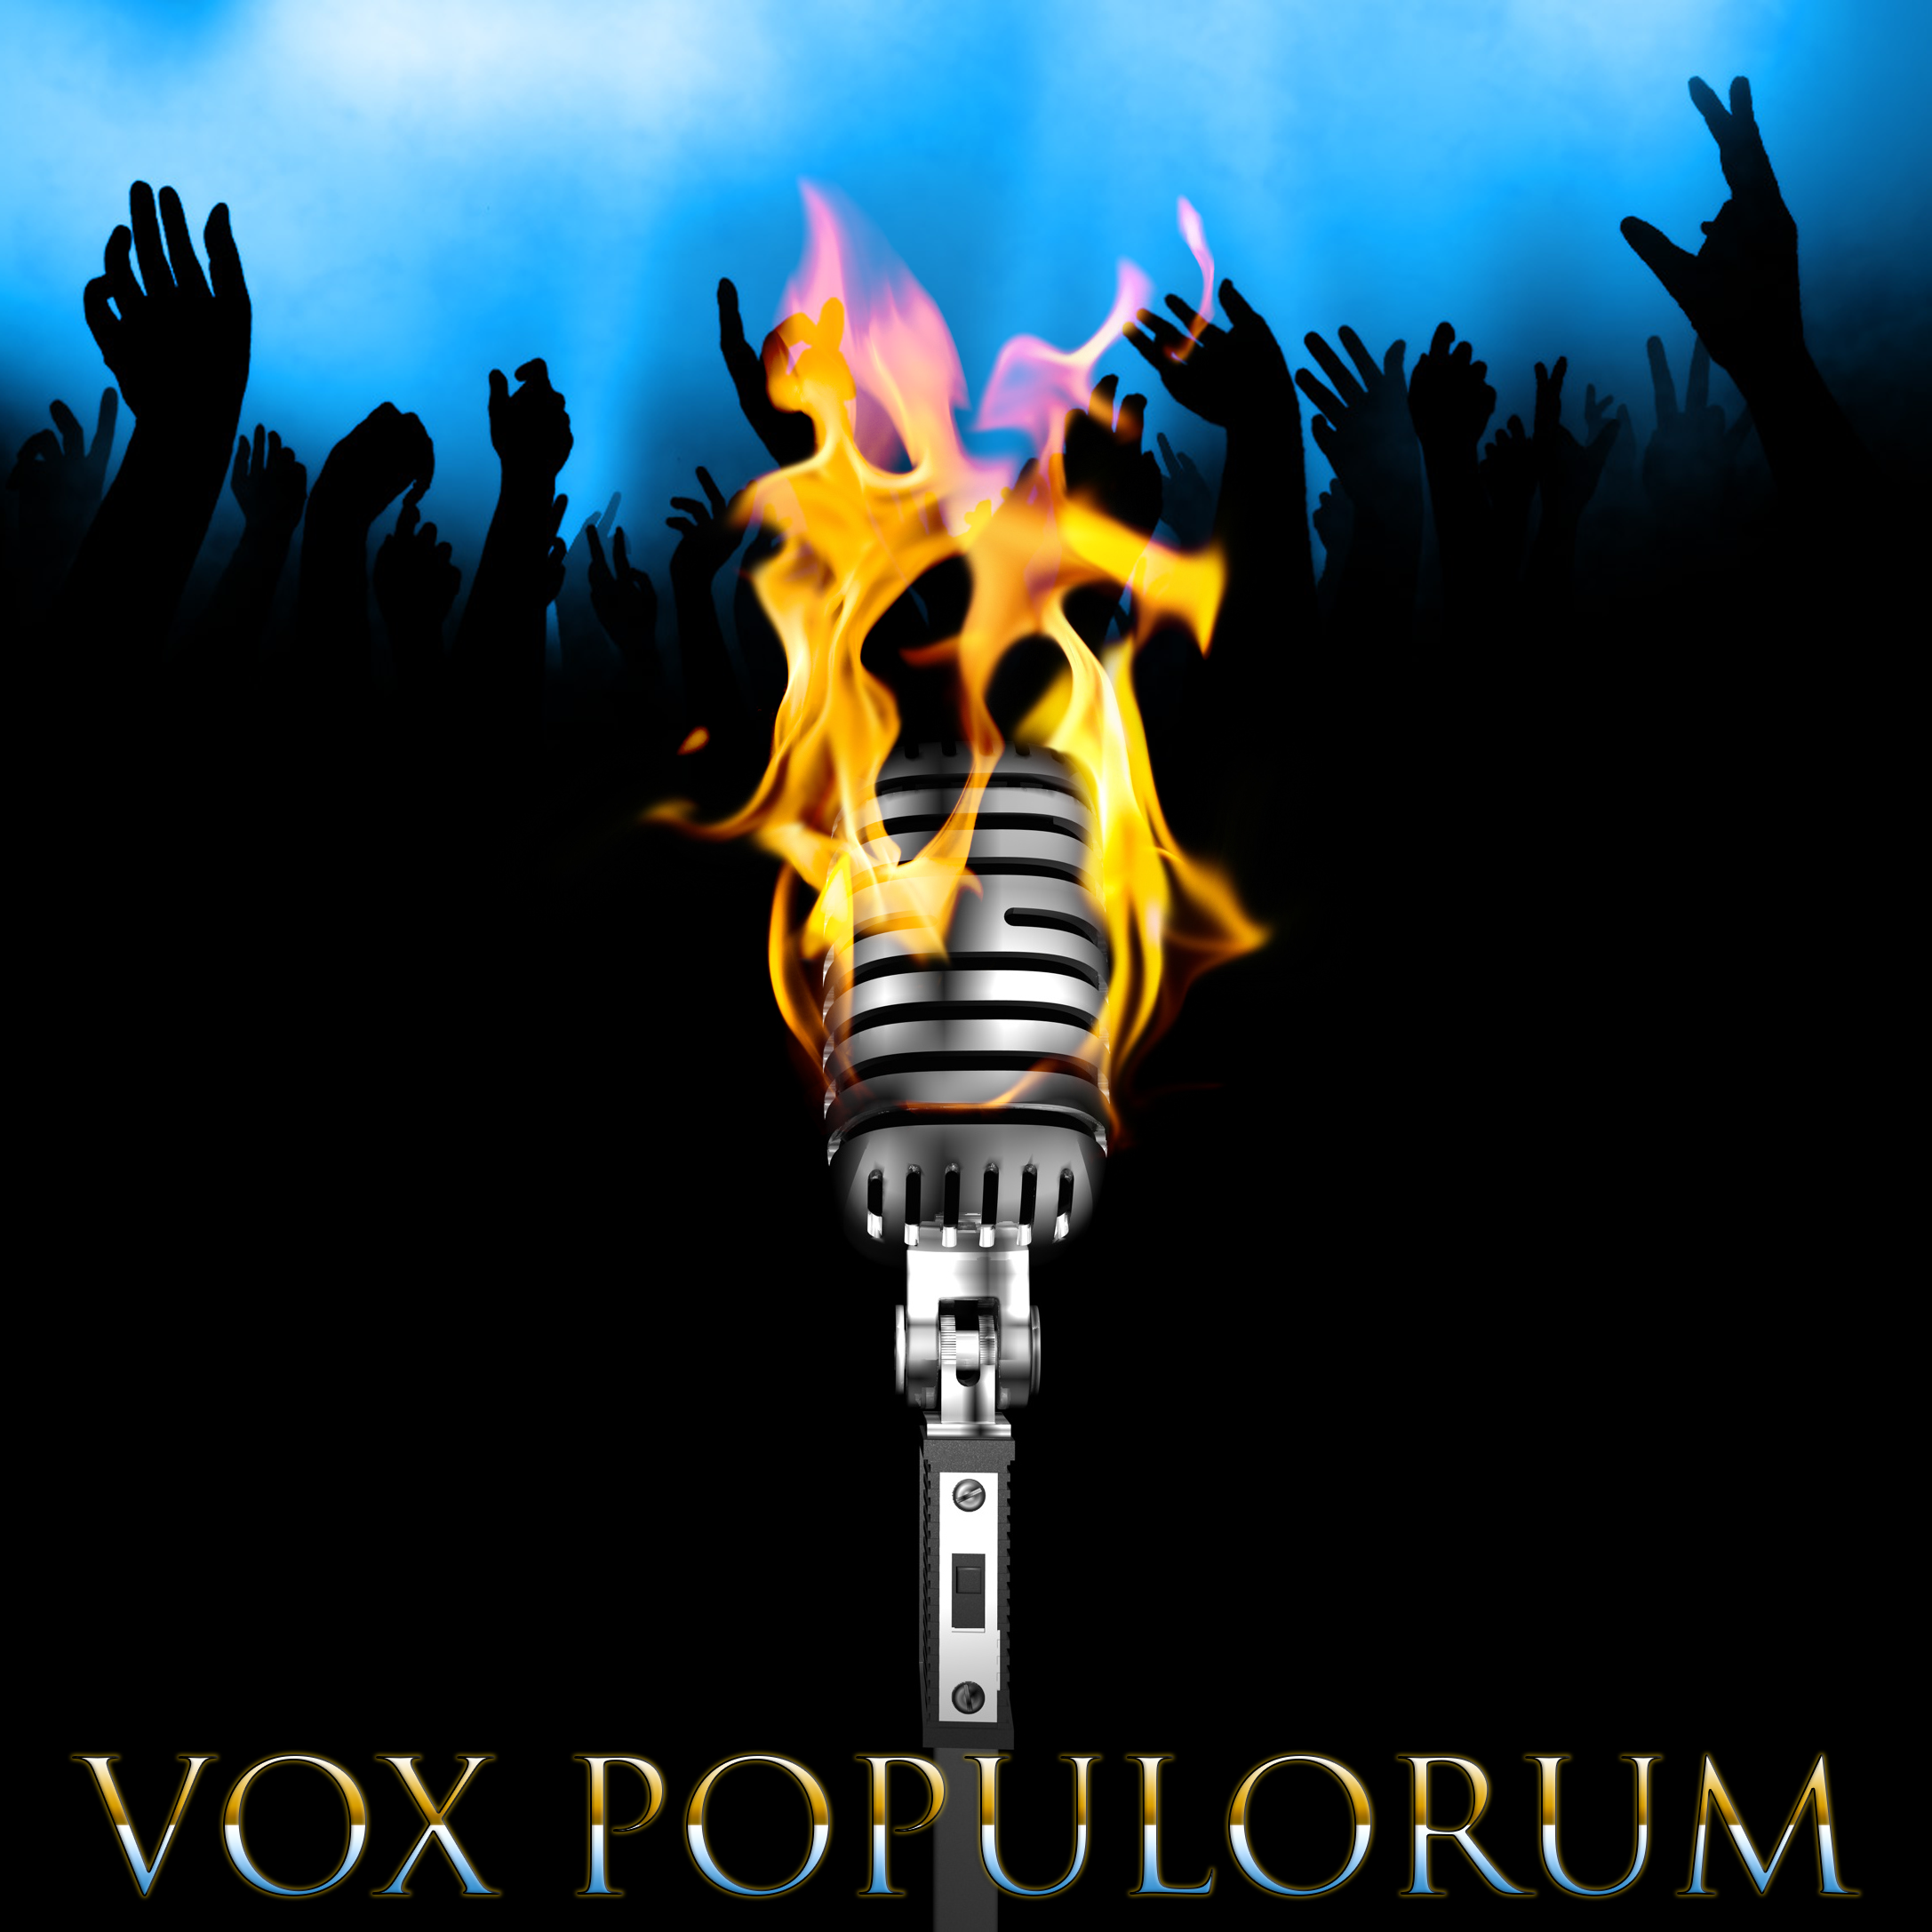 The VoxPopcast